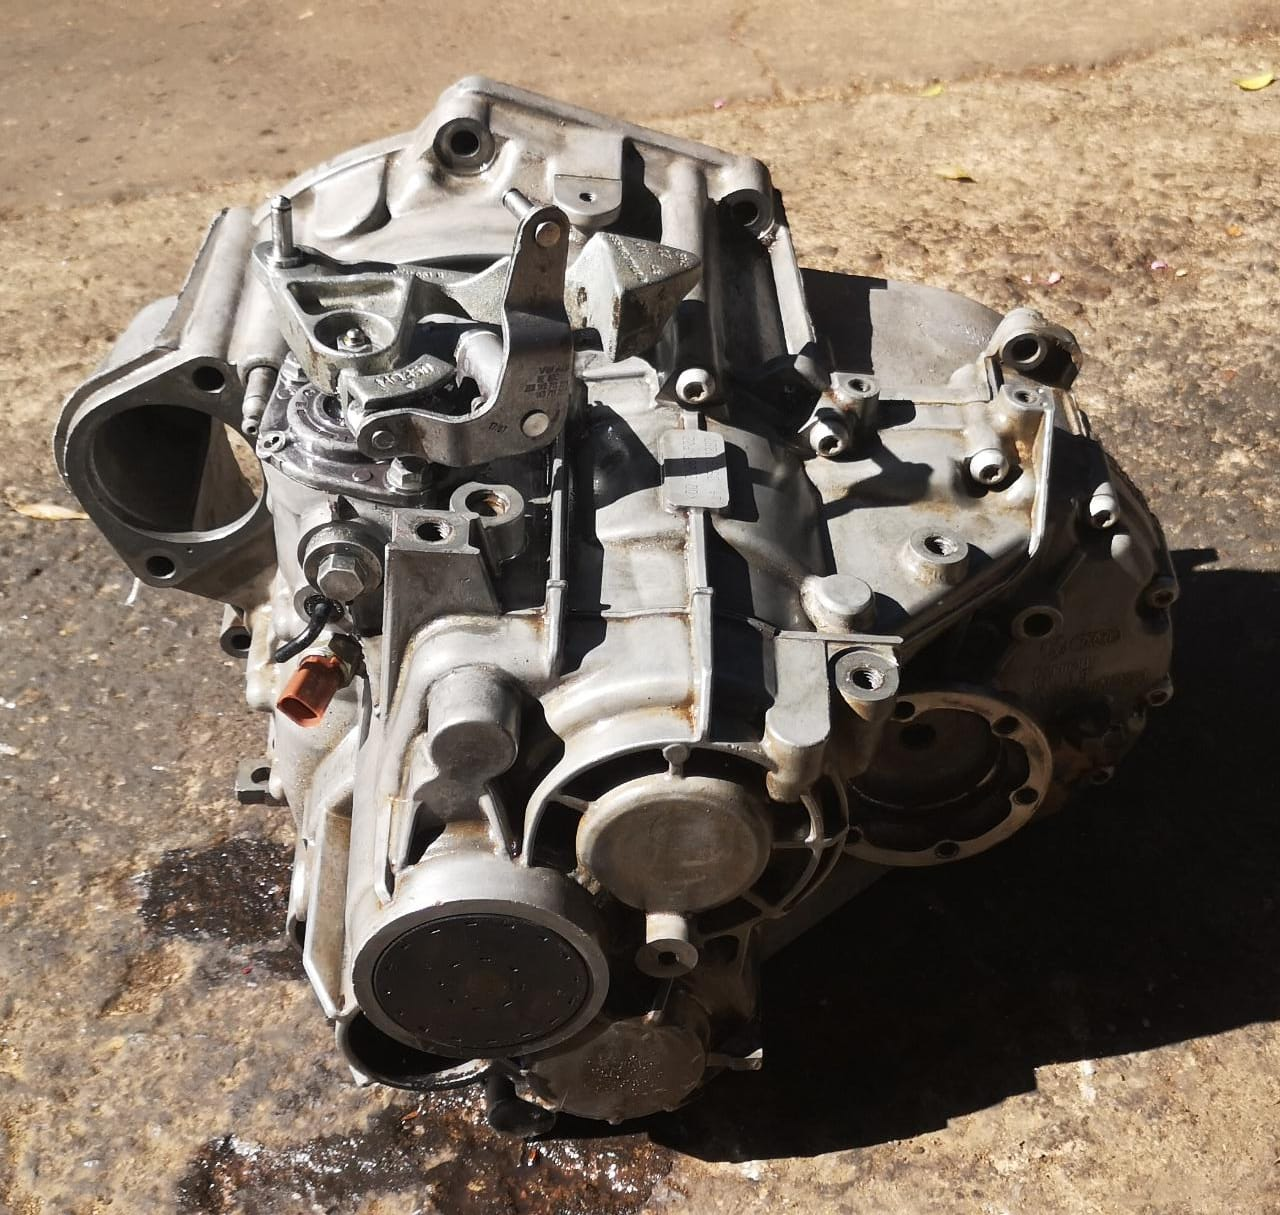 Push 2 Used : golf 6 push 2 0 used gearbox for sale junk mail ~ Hamham.info Haus und Dekorationen